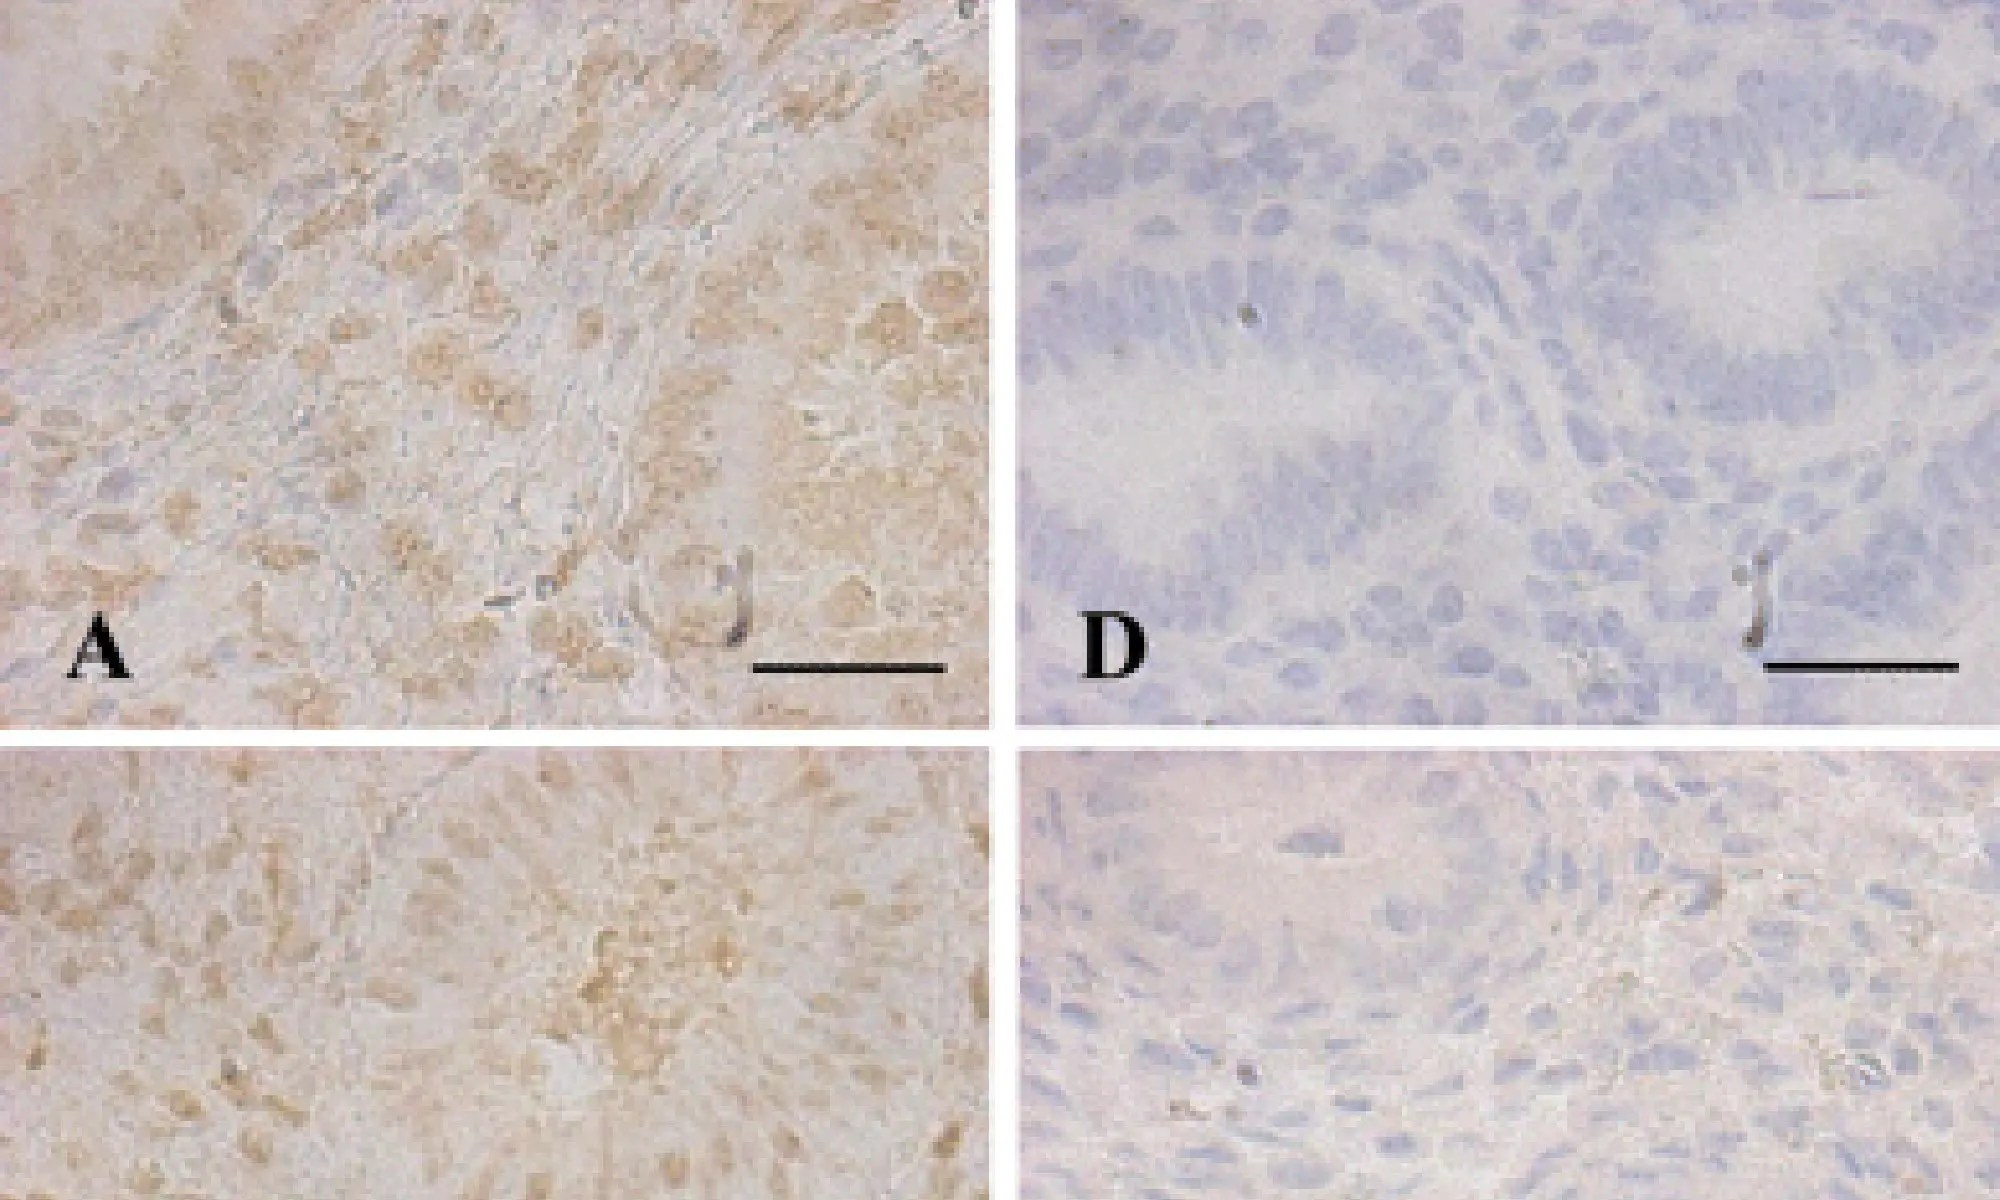 image of DNA methyltransferase expression in the human endometrium